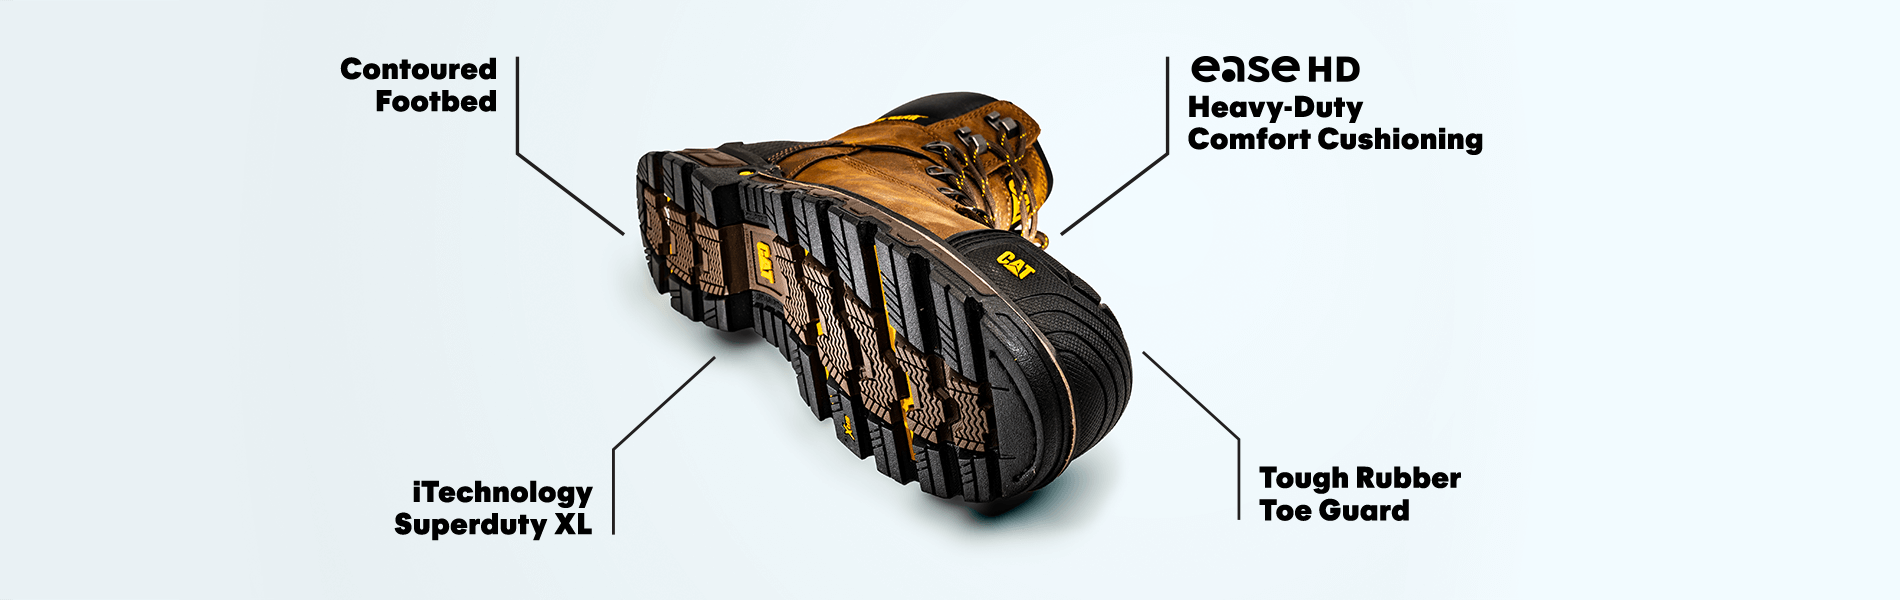 Contoured footbed, ease hd heavy-duty comfort cushioning, iTechnology superduty XL and tough rubber toe guard.